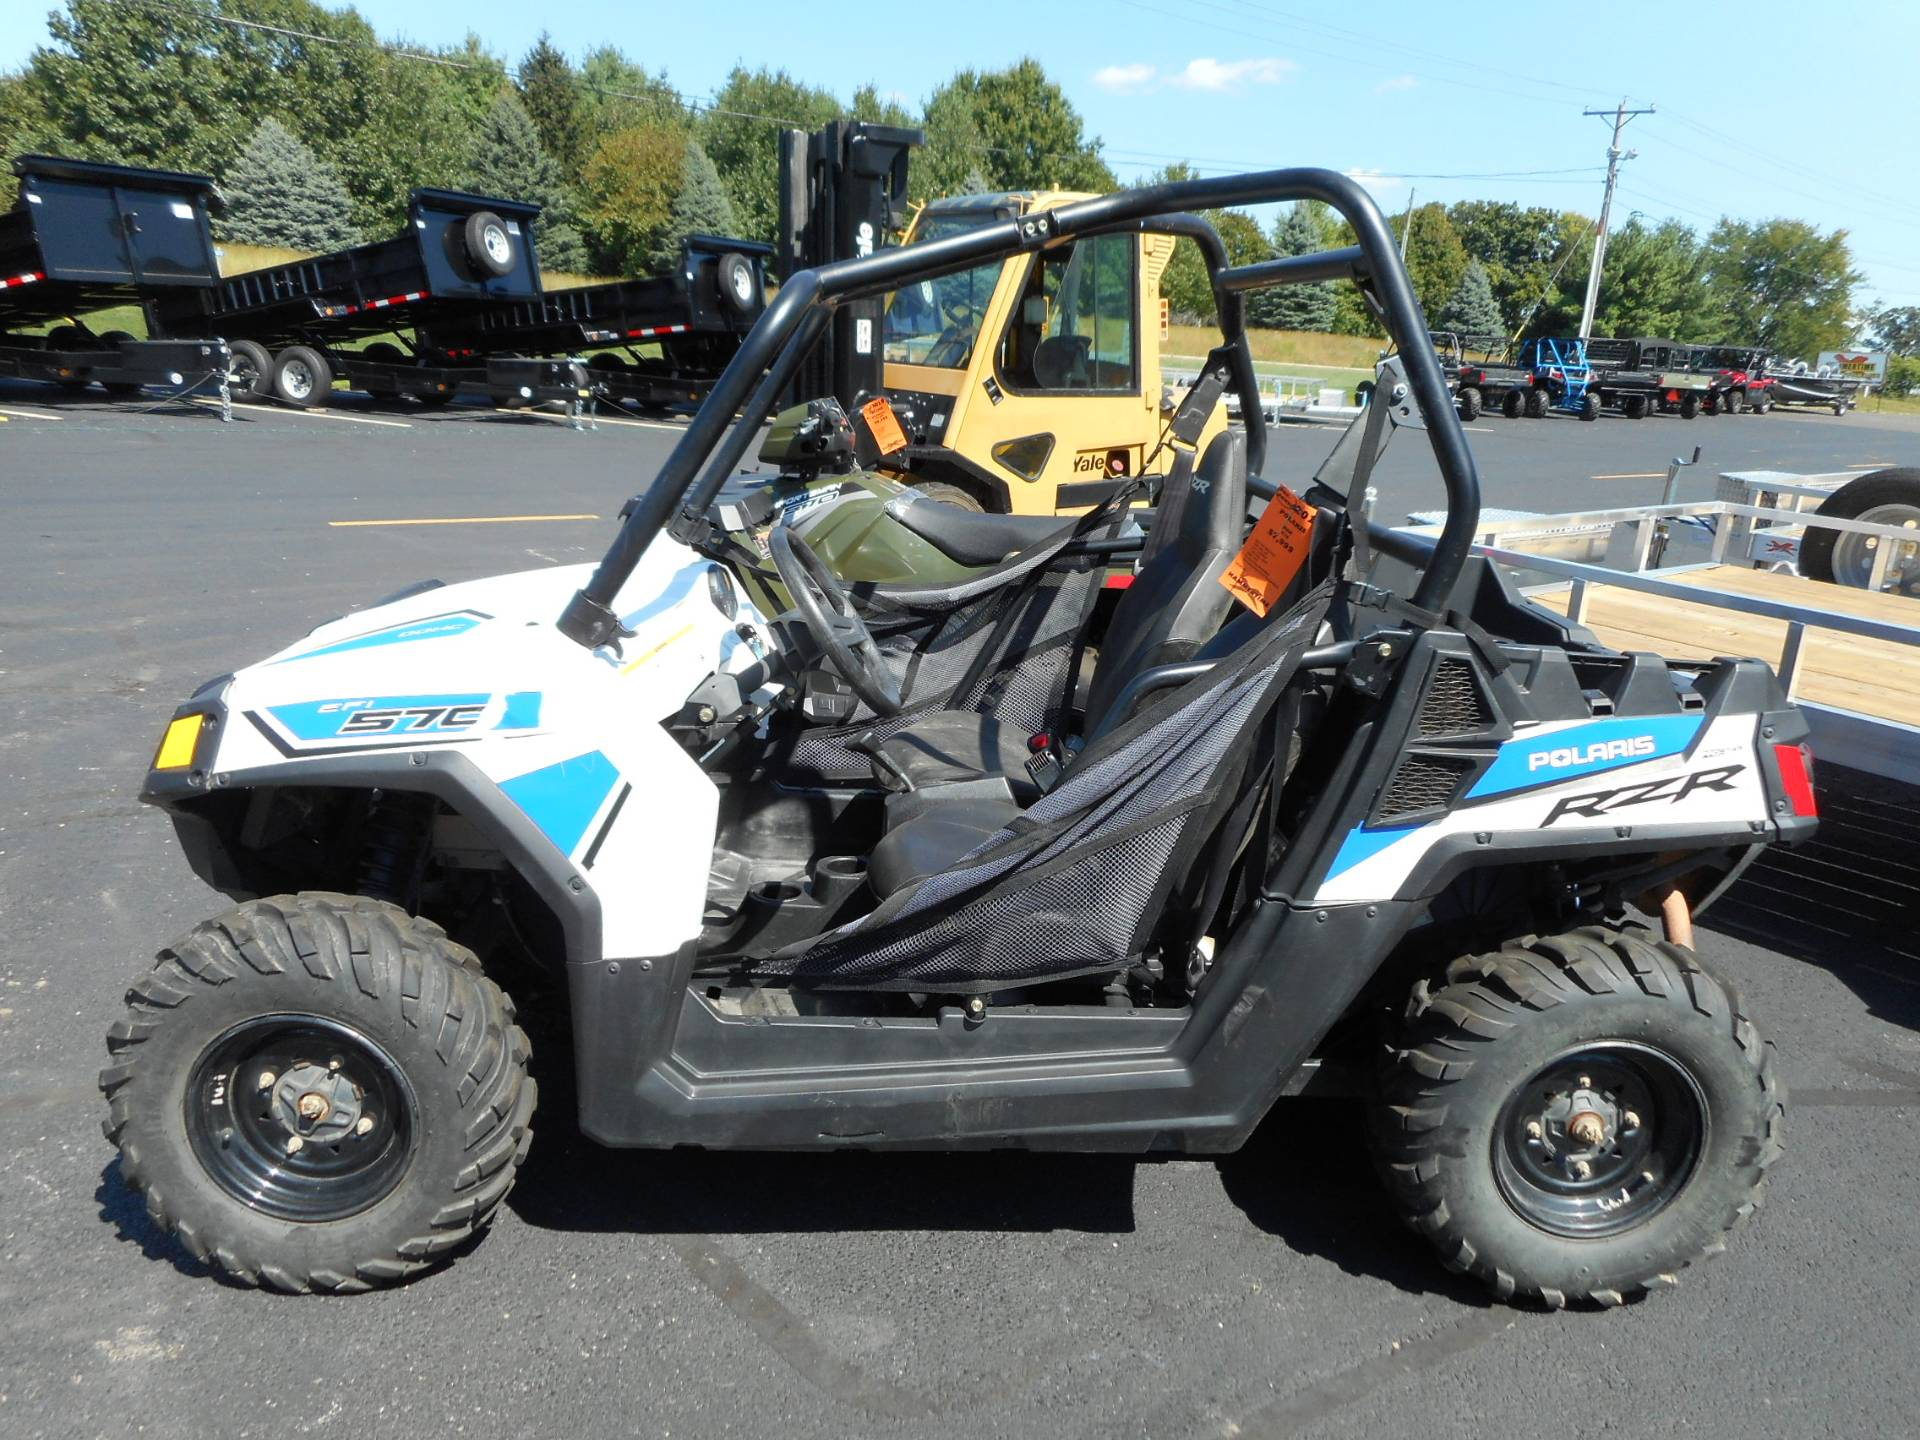 2017 Polaris RZR 570 in Belvidere, Illinois - Photo 1